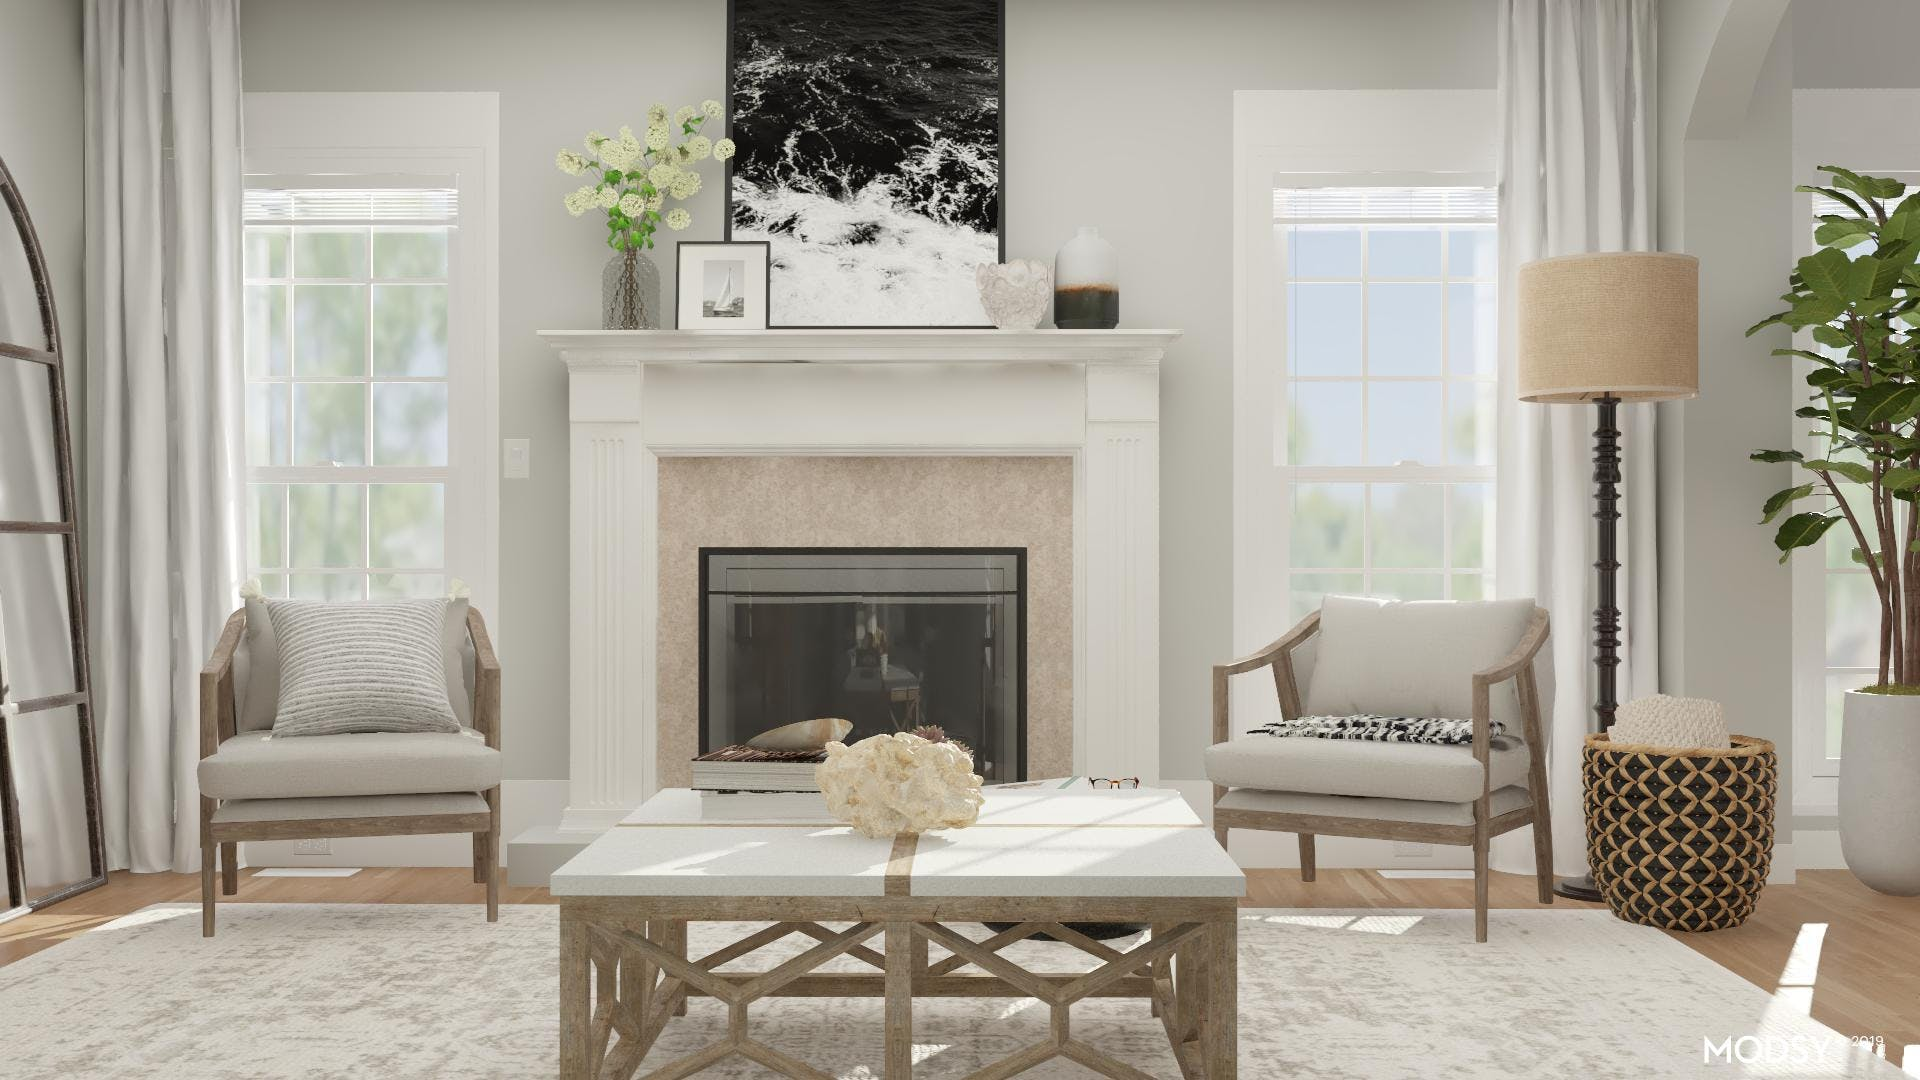 All In The Details: Coastal Living Room